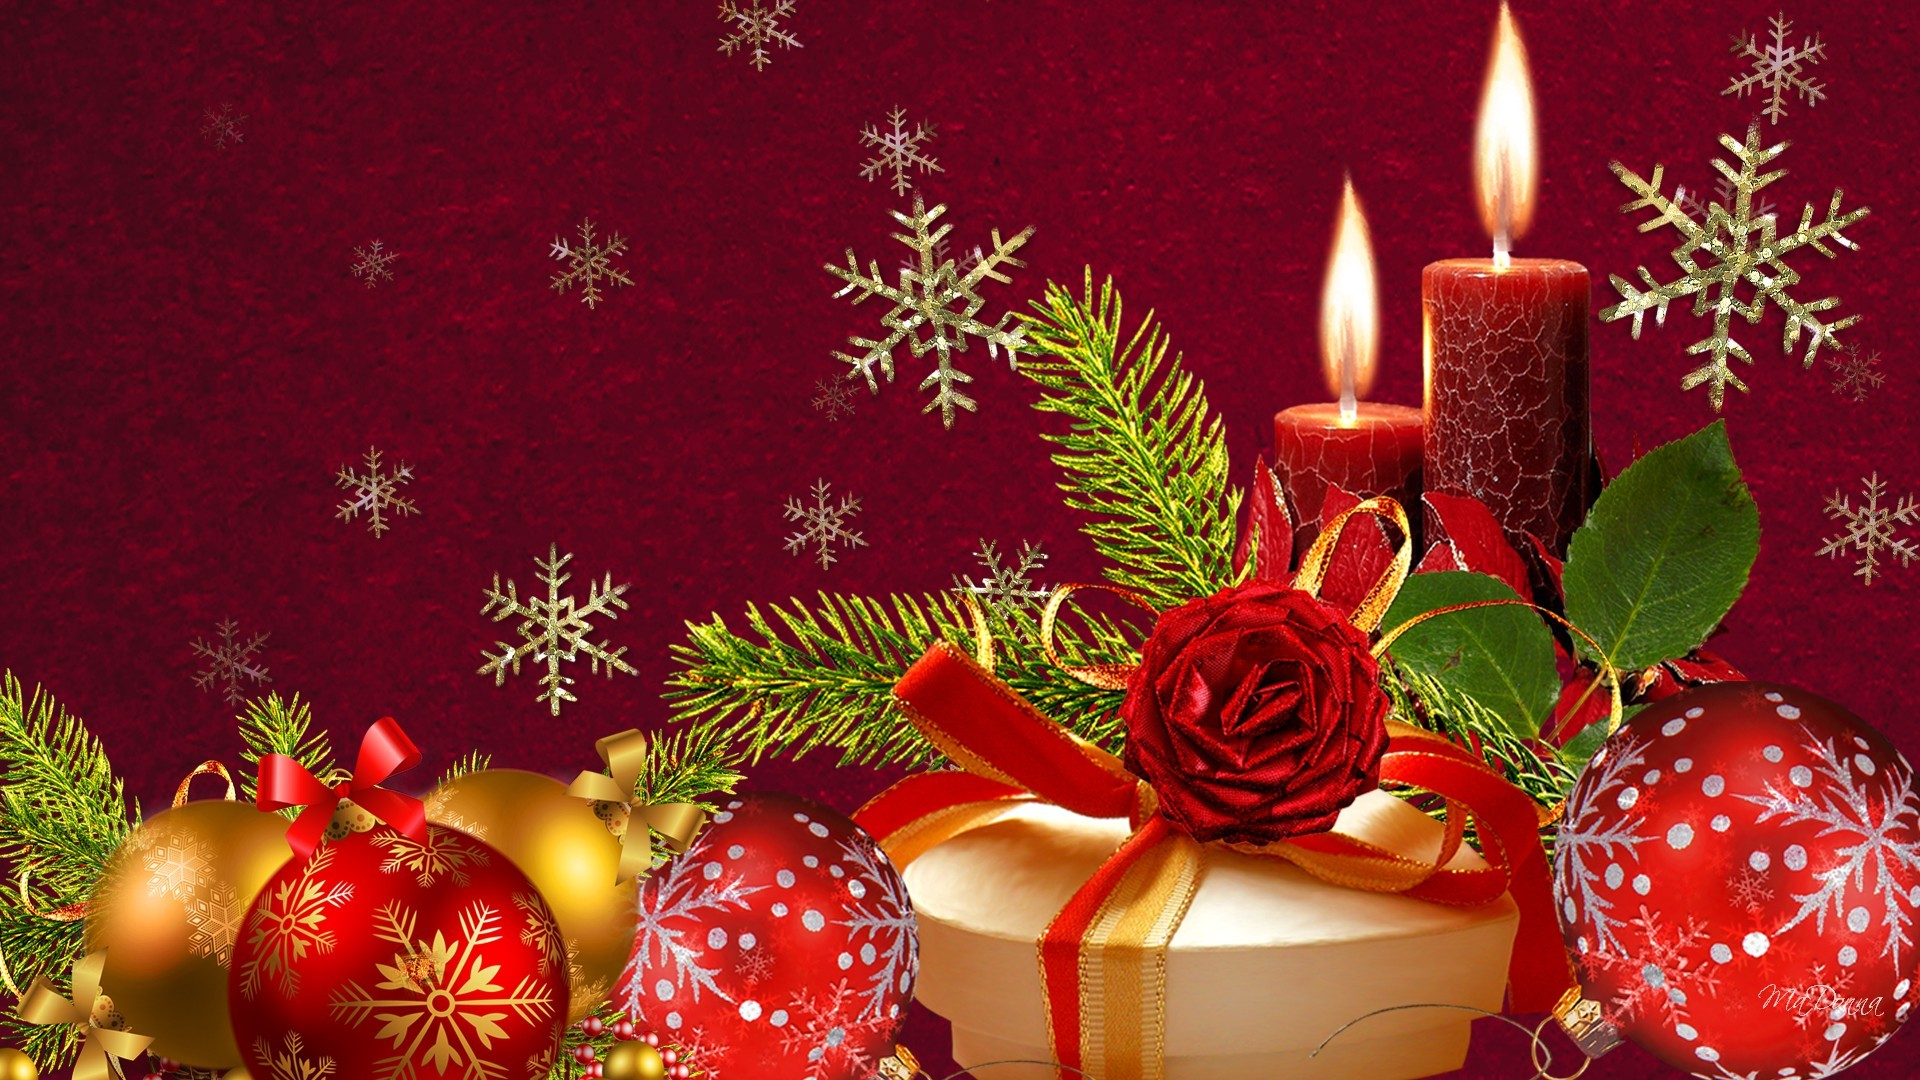 Beautiful Christmas ornaments decoration wallpapers HD for desktop